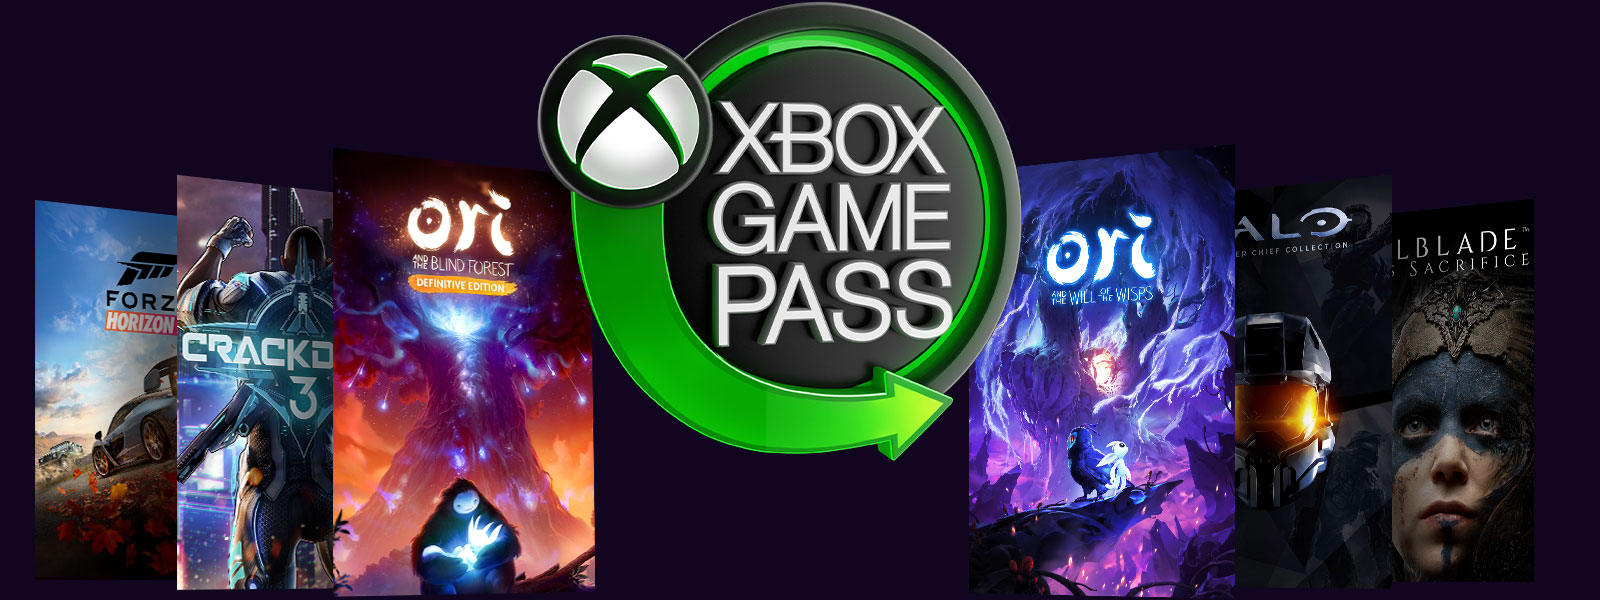 Xbox Game Pass-logotypen med förpackningarna för Ori and the Will of the Wisps, Ori and the Blind Forest, Crackdown 3, Halo, Forza Horizon 4 och Hellblade